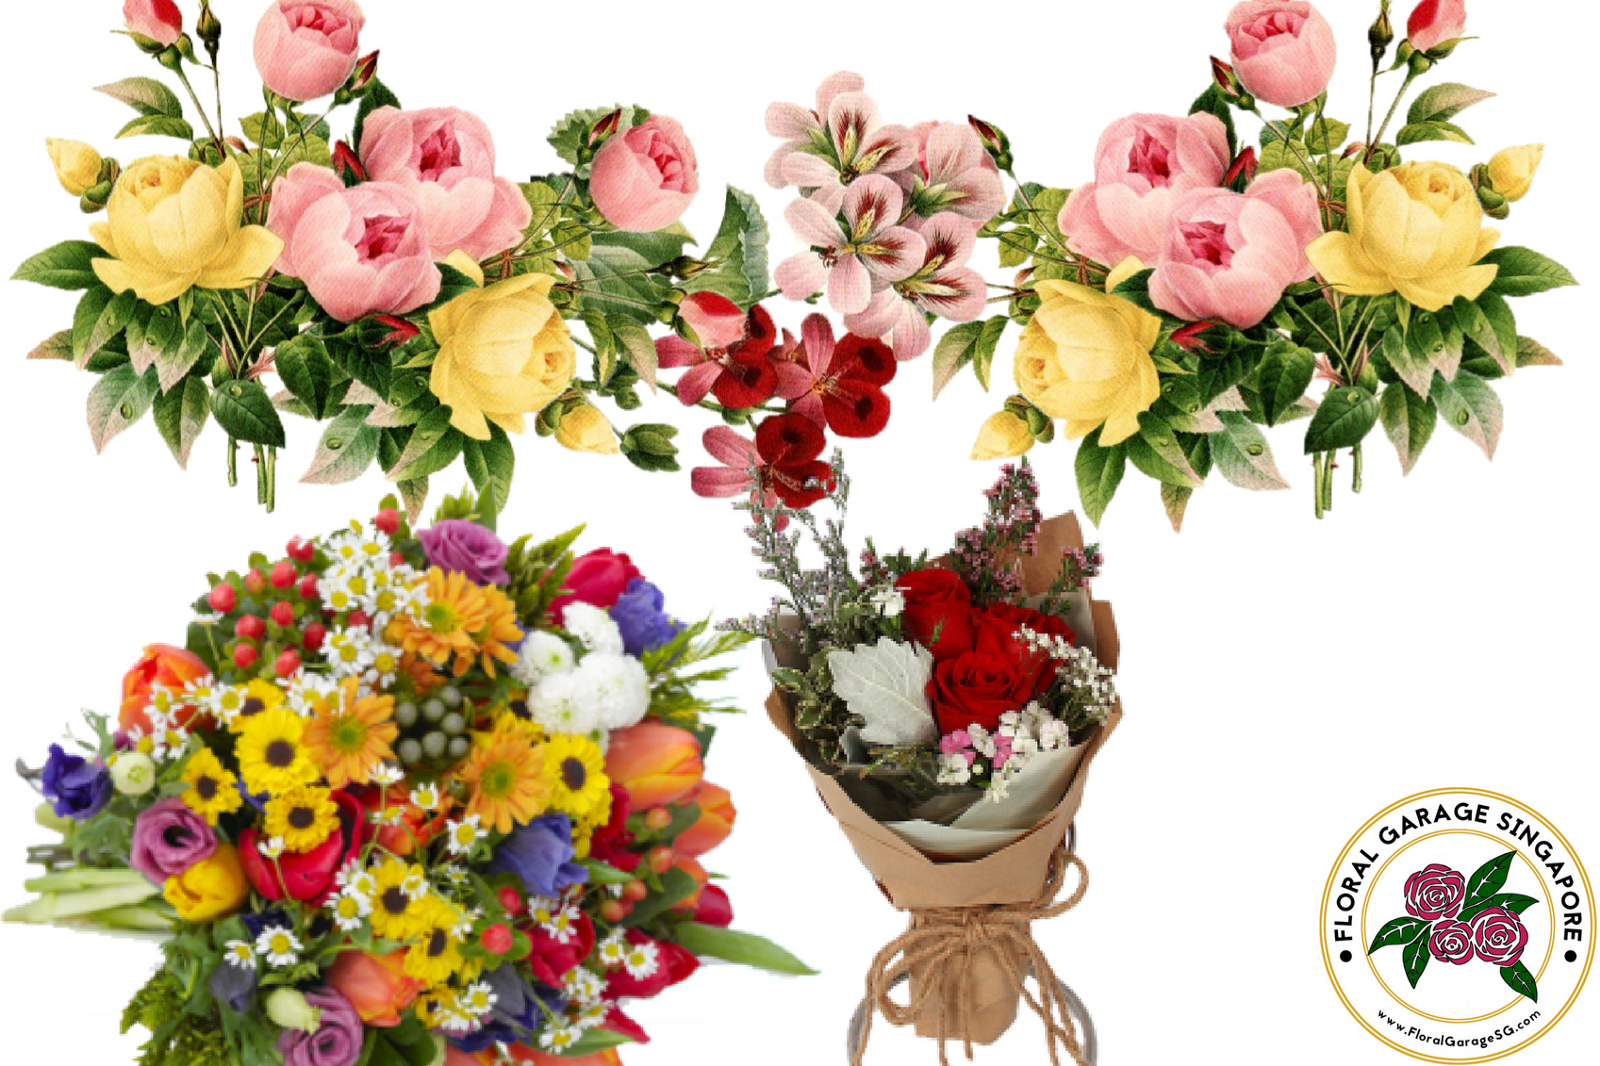 We should abandon physical stores the immense advantages of flower they are becoming faster and easier to order online from a flower shop sending flowers for different occasions is a nice way to express feelings mightylinksfo